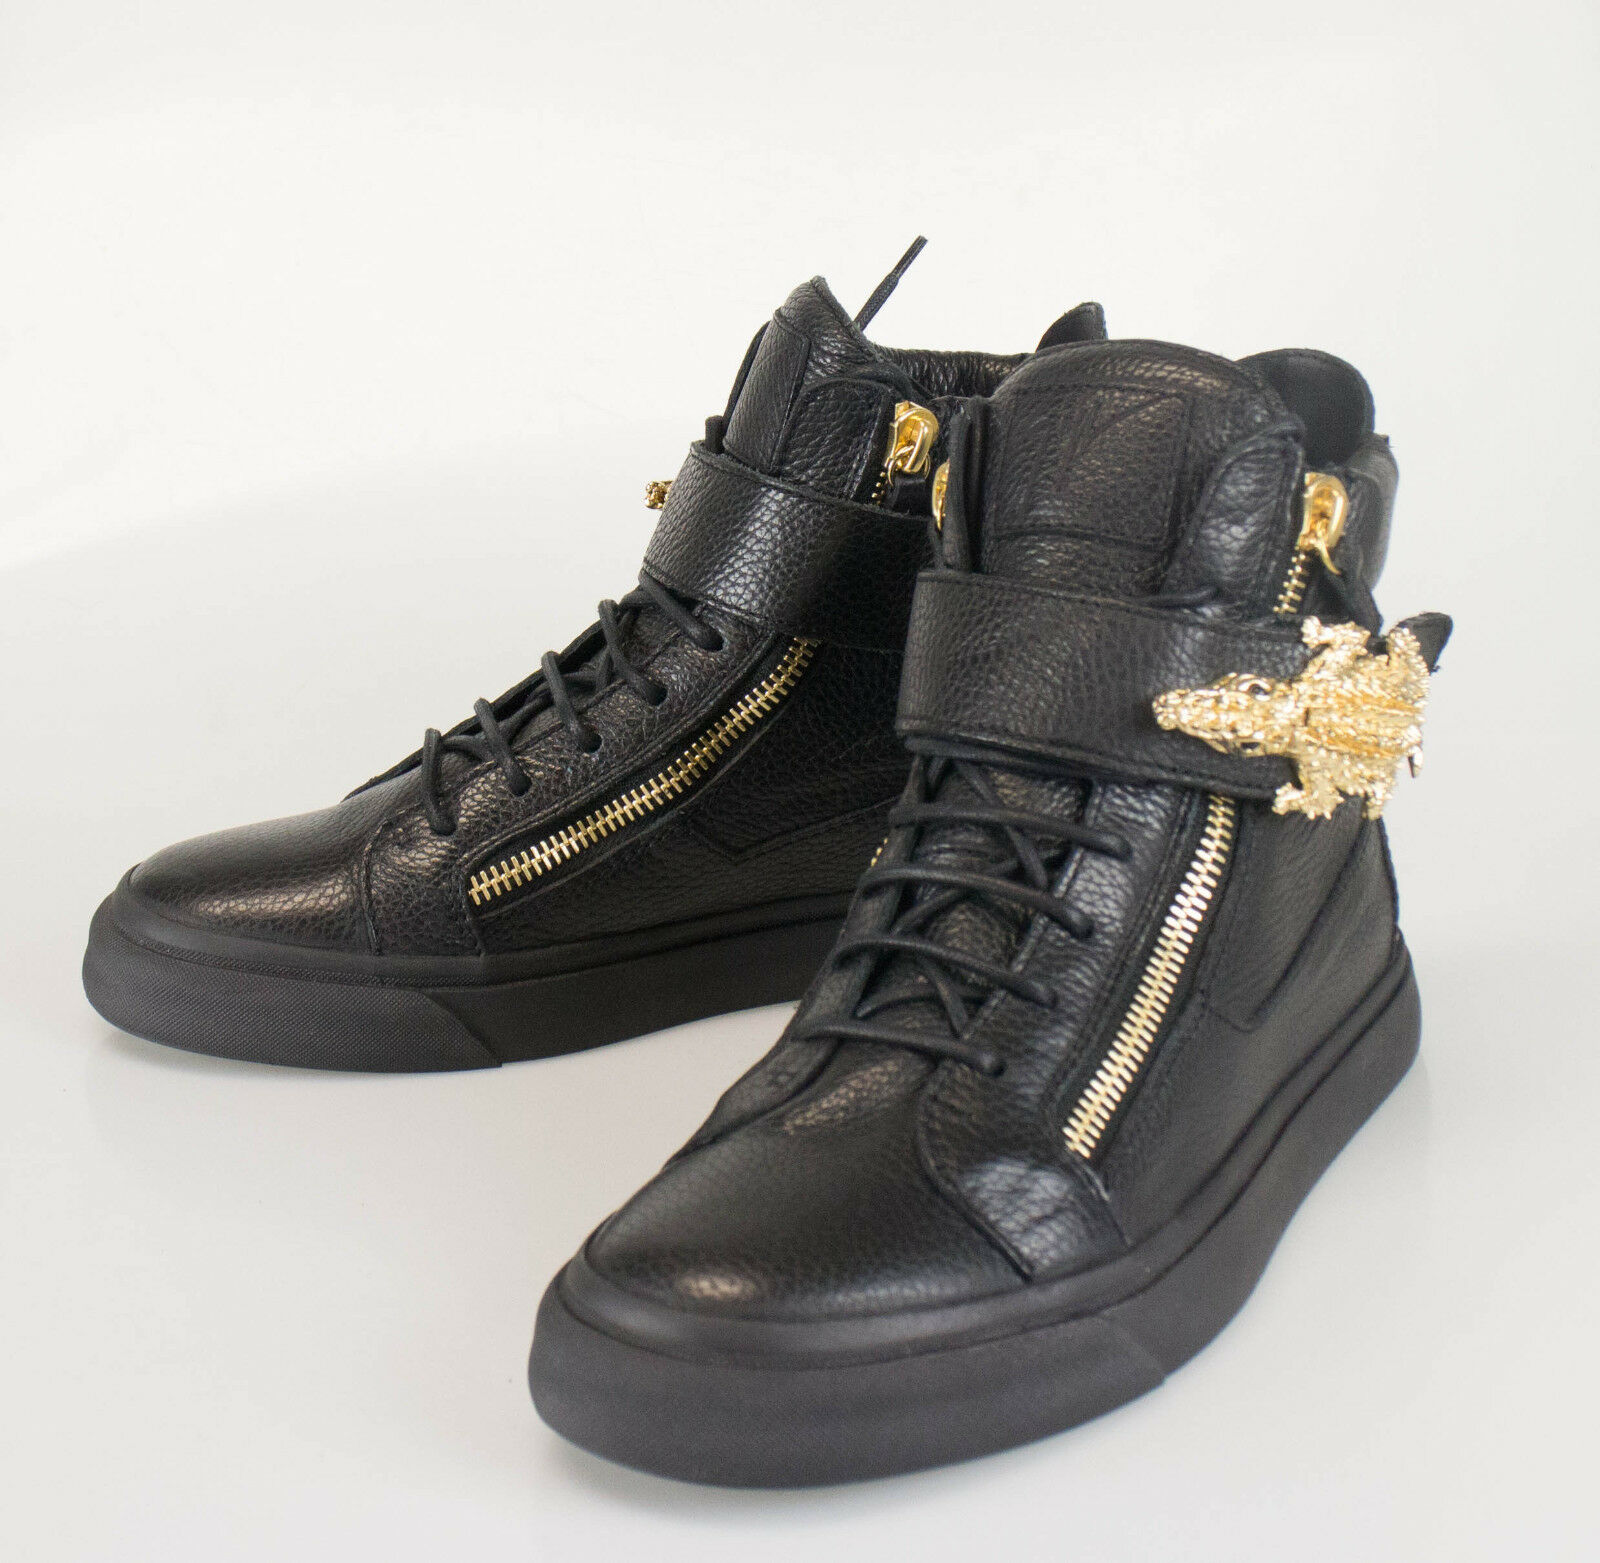 New. GIUSEPPE ZANOTTI London Lindos-Vague Sneakers Shoes 13 US 46 EU 1395